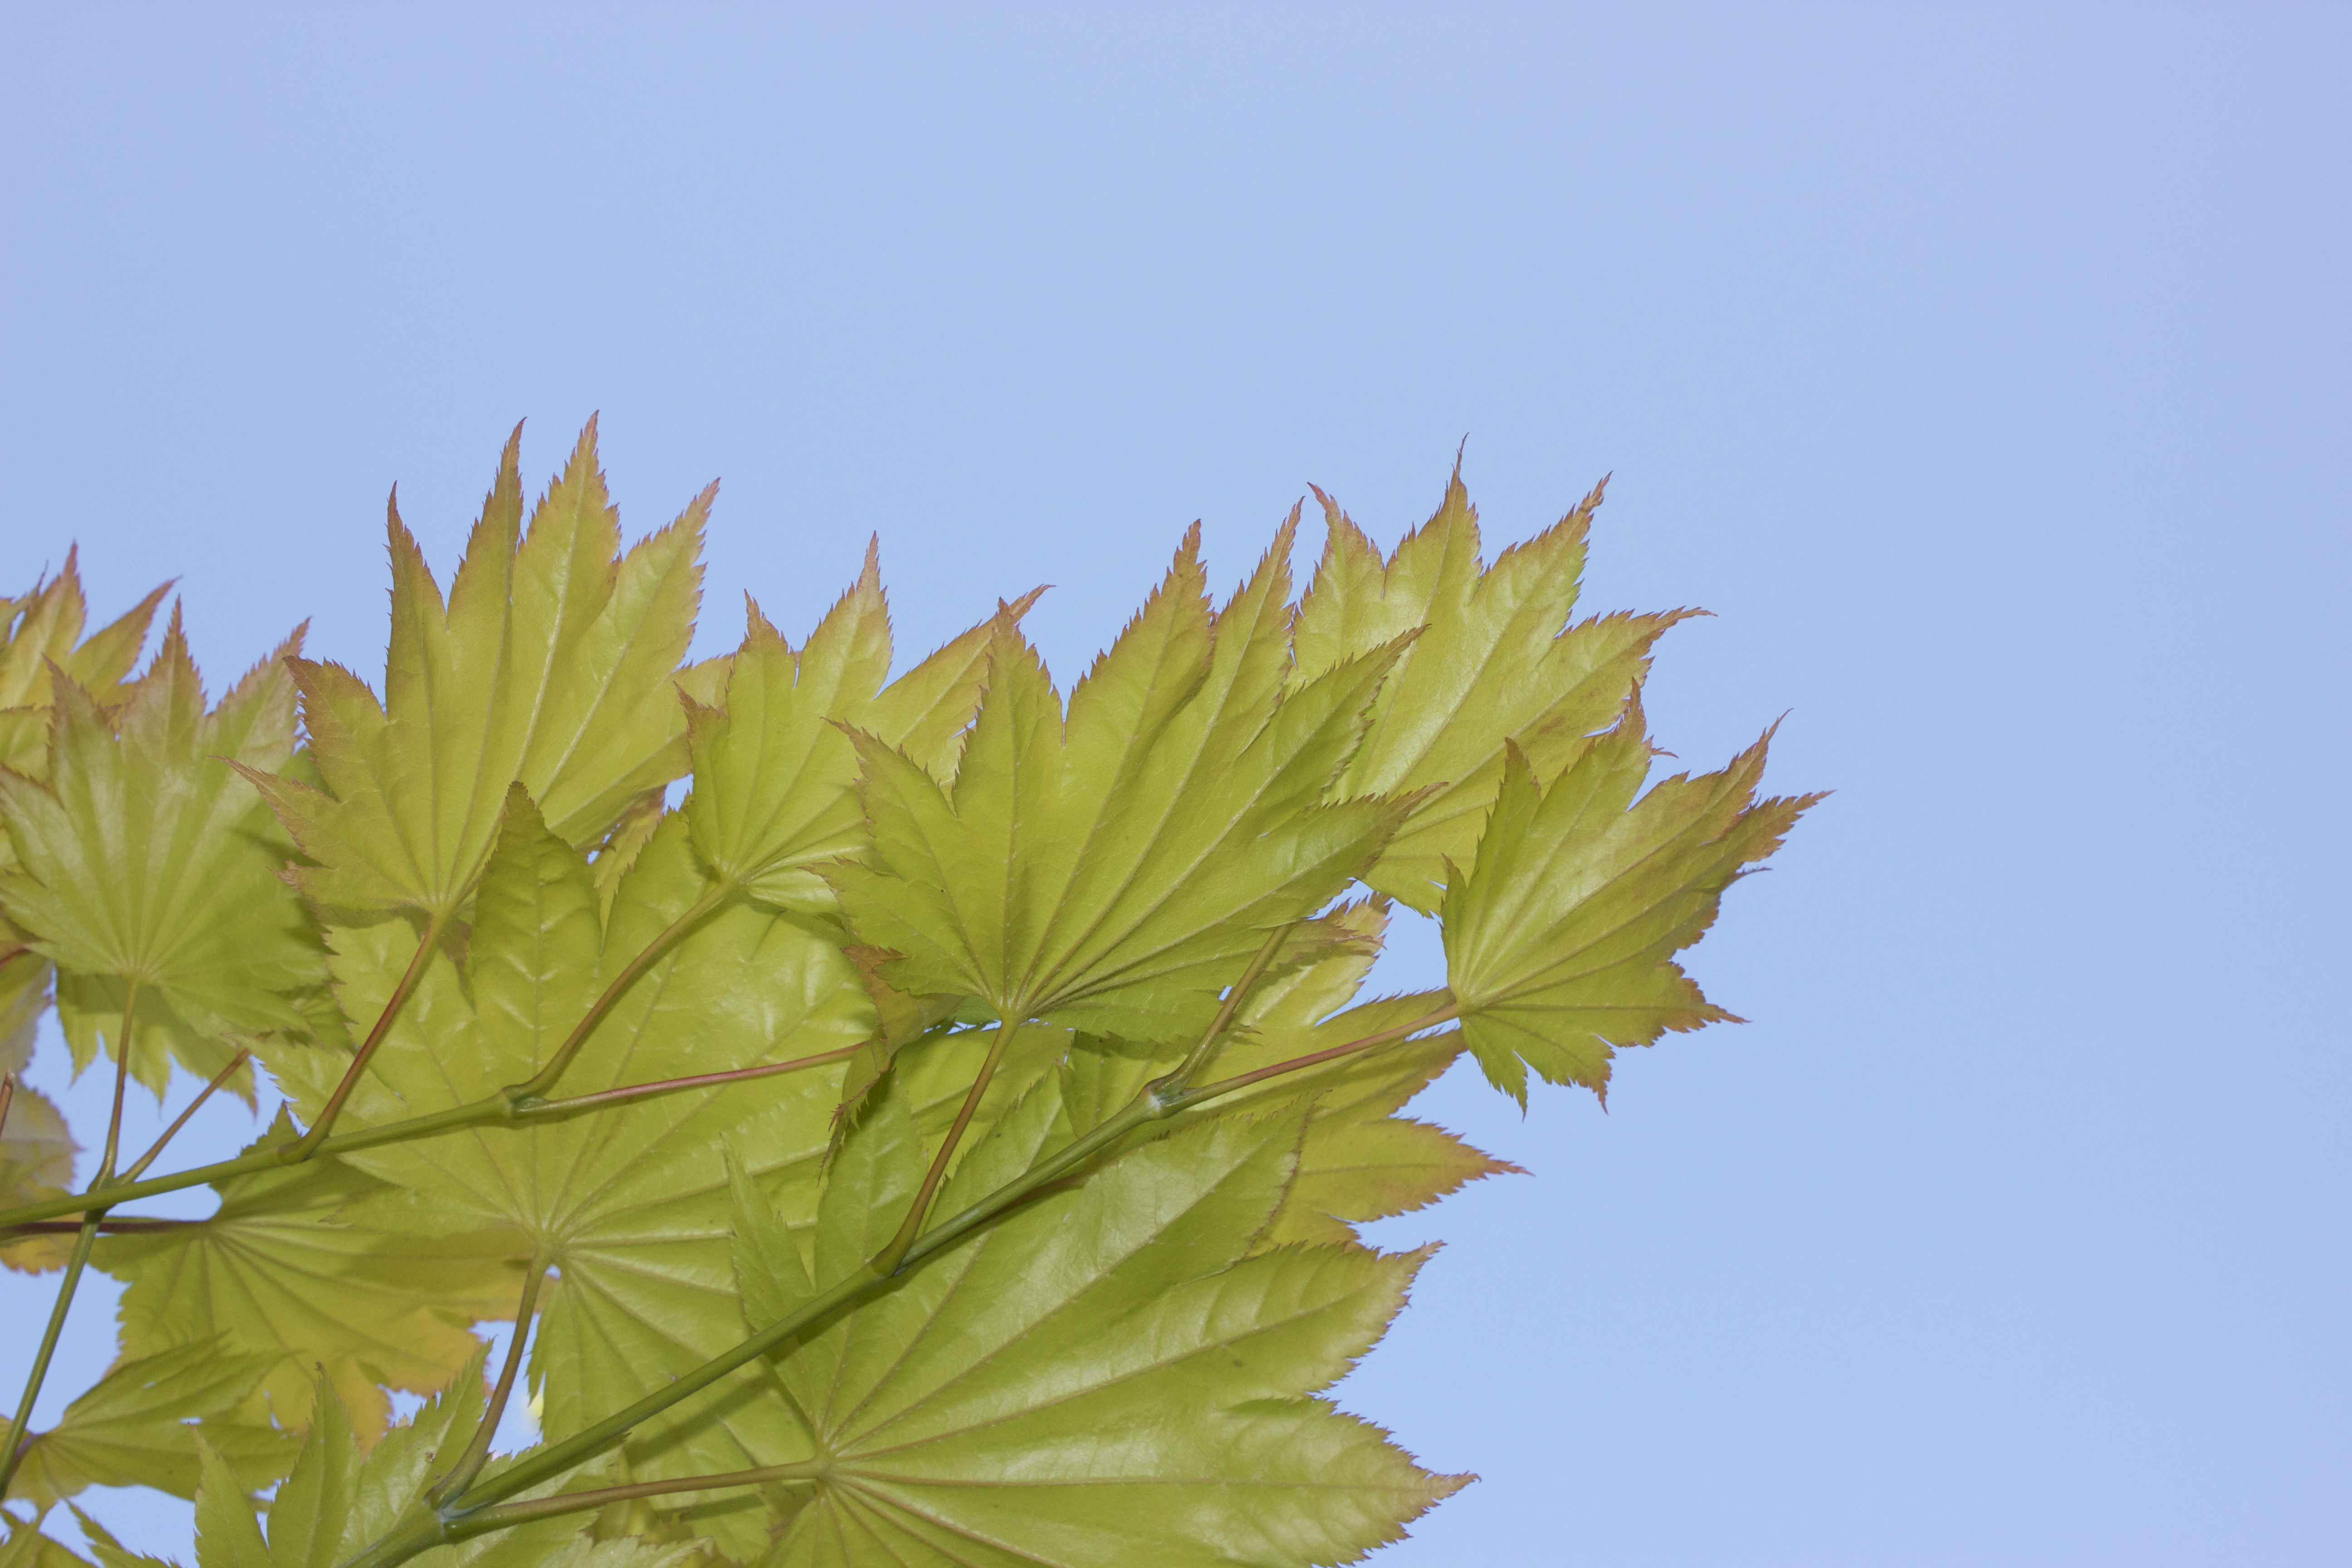 Bright yellow-green leaves against a clear blue sky.